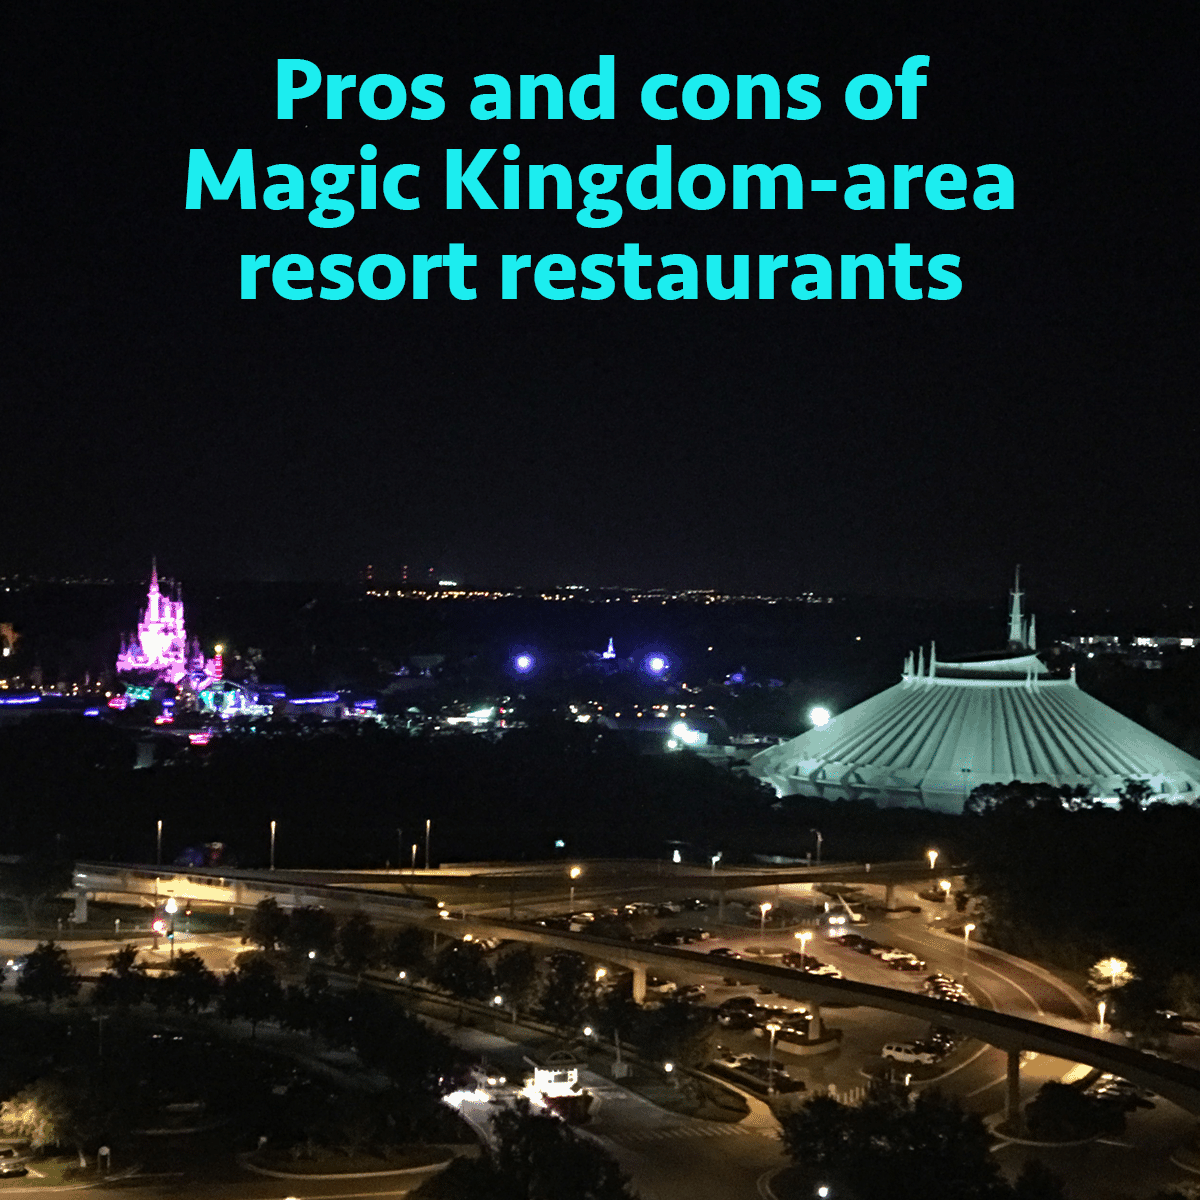 the pros and cons of all magic kingdom area resort restaurants